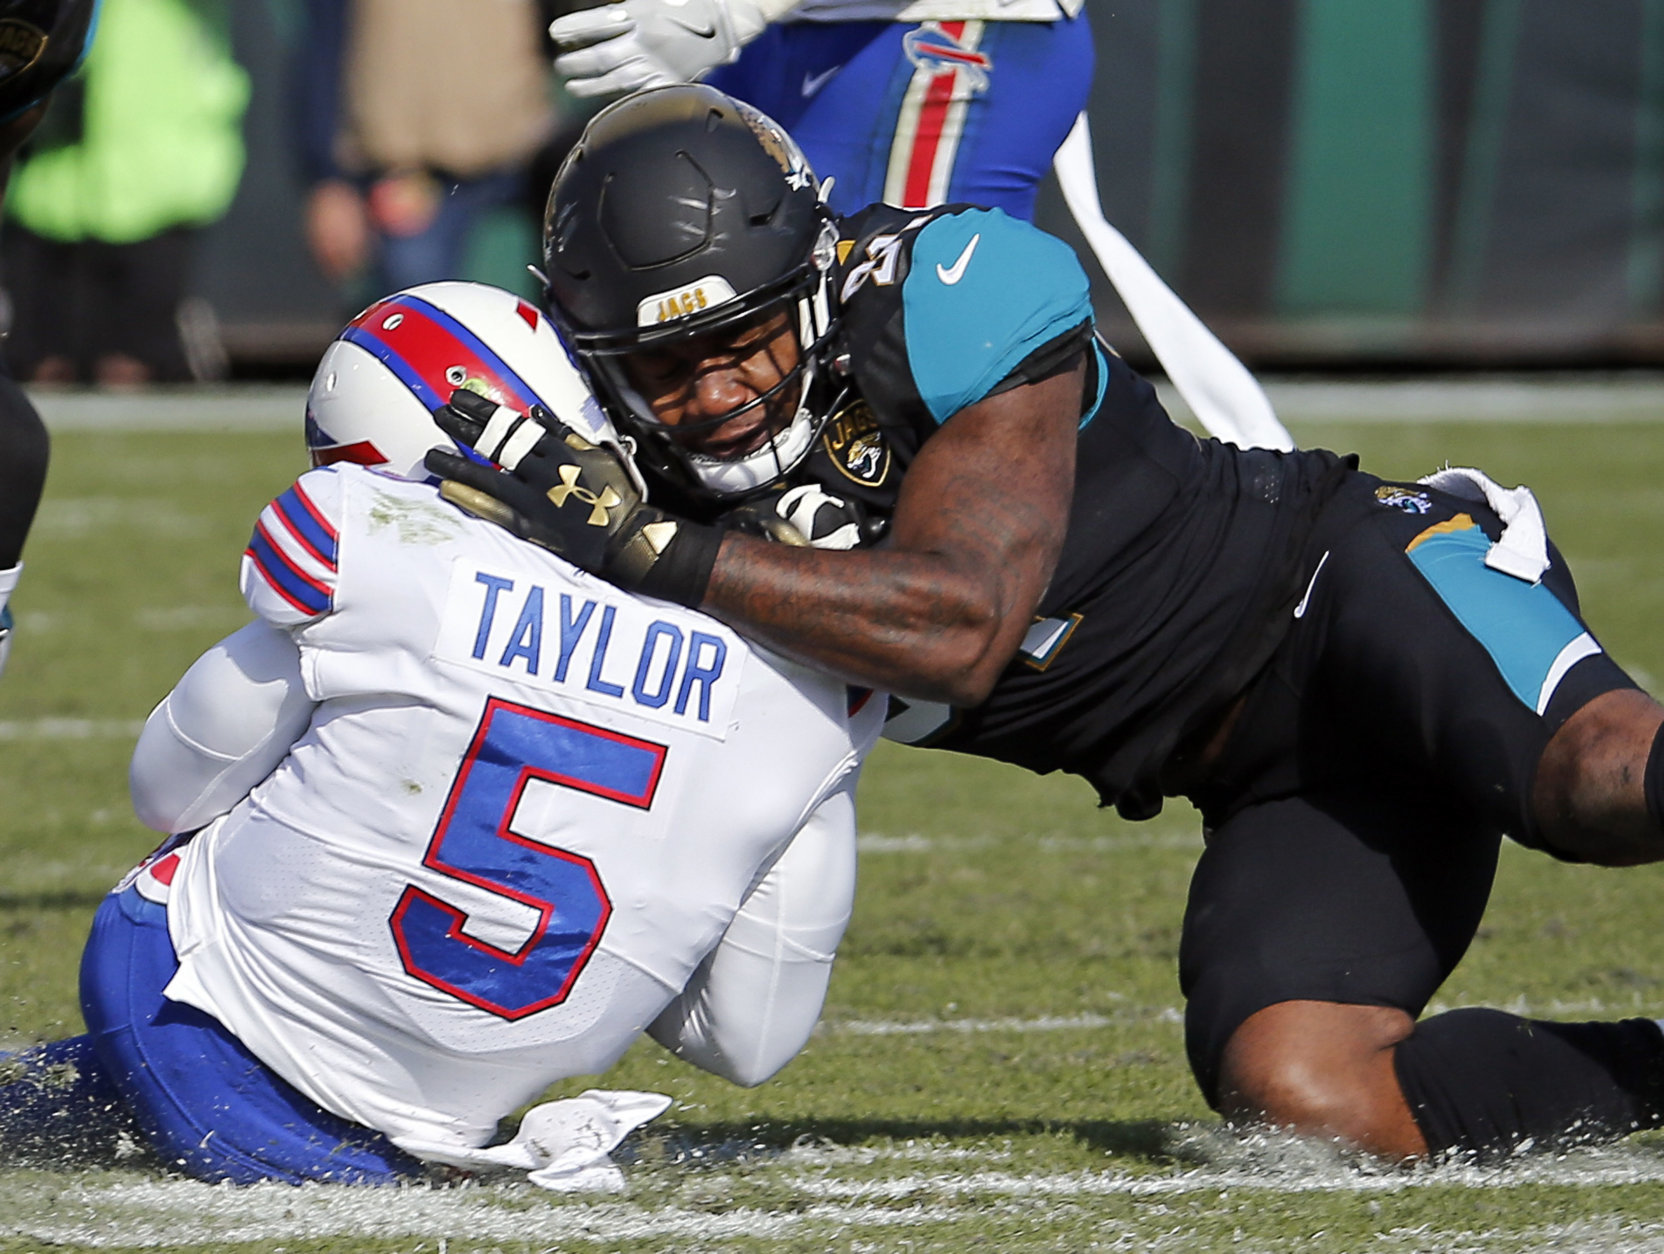 FILE - In this Jan. 7, 2018, file photo, Jacksonville Jaguars defensive end Yannick Ngakoue, right, draws a penalty by hitting Buffalo Bills quarterback Tyrod Taylor (5) with helmet-to-helmet contact during the first half of an NFL wild-card playoff football game in Jacksonville, Fla. The NFL's new rule making it a penalty when a player leads with his helmet is generating plenty of grumbling about taking the football out of the sport, but more practically it's led to confusion about how it'll be enforced.  (AP Photo/Stephen B. Morton, File)